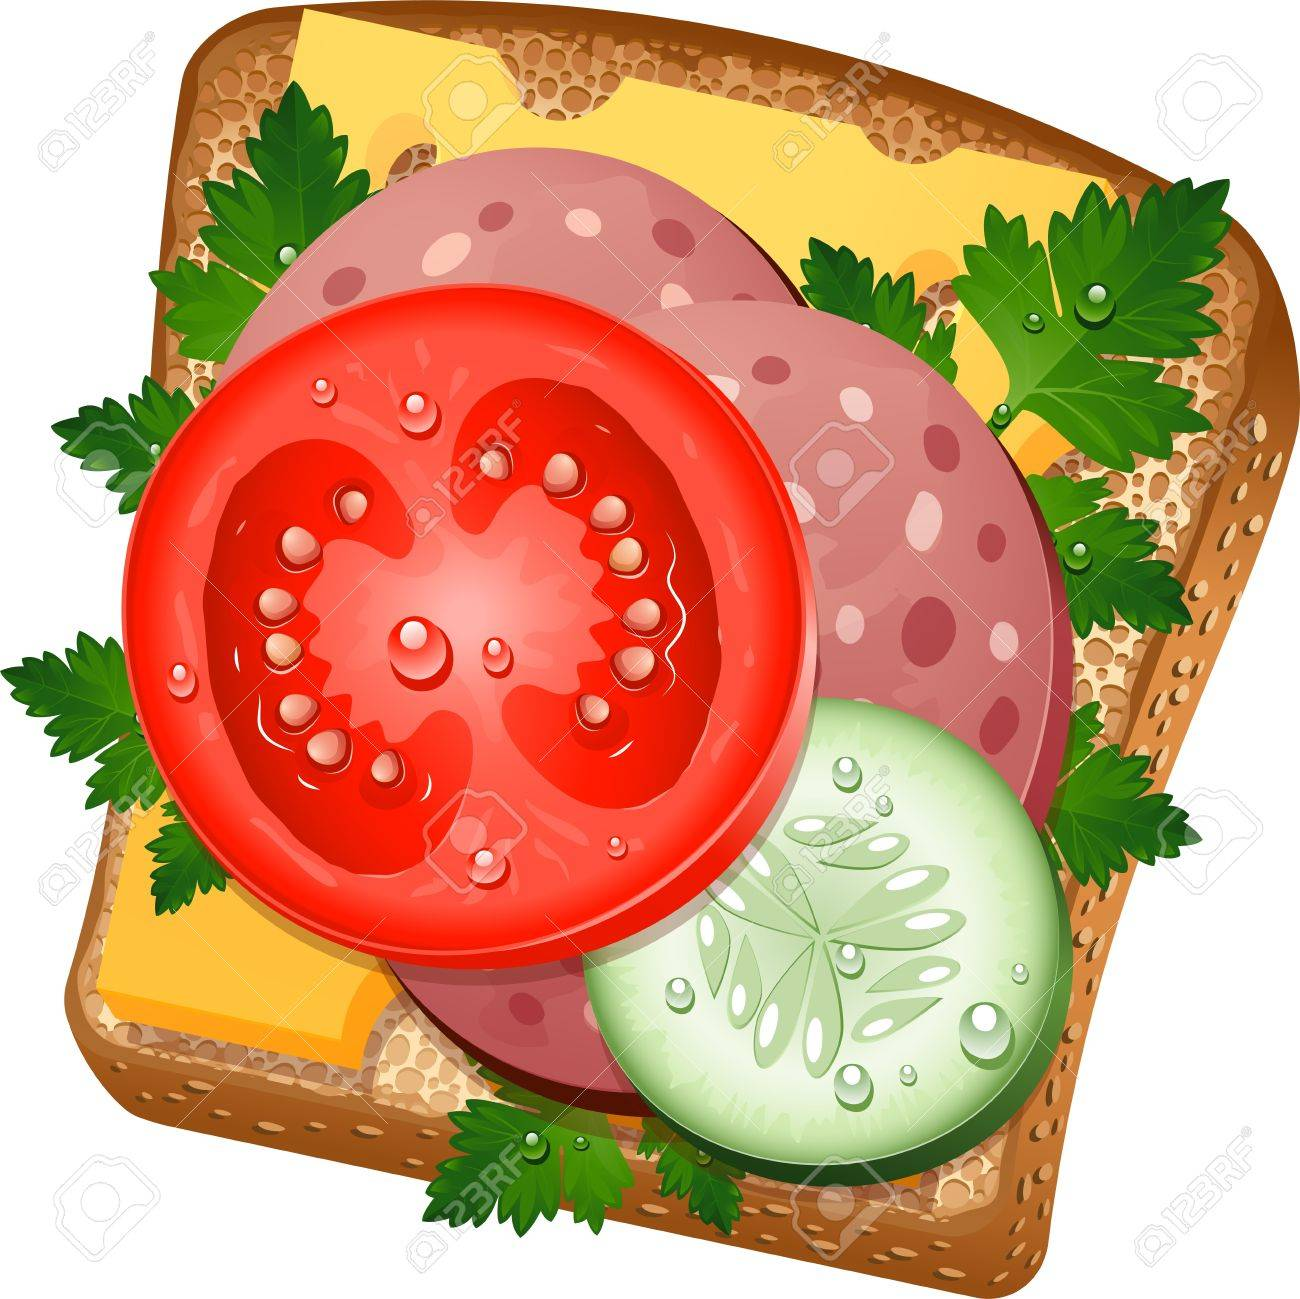 Delicious sandwich on white background. Stock Vector - 14168929